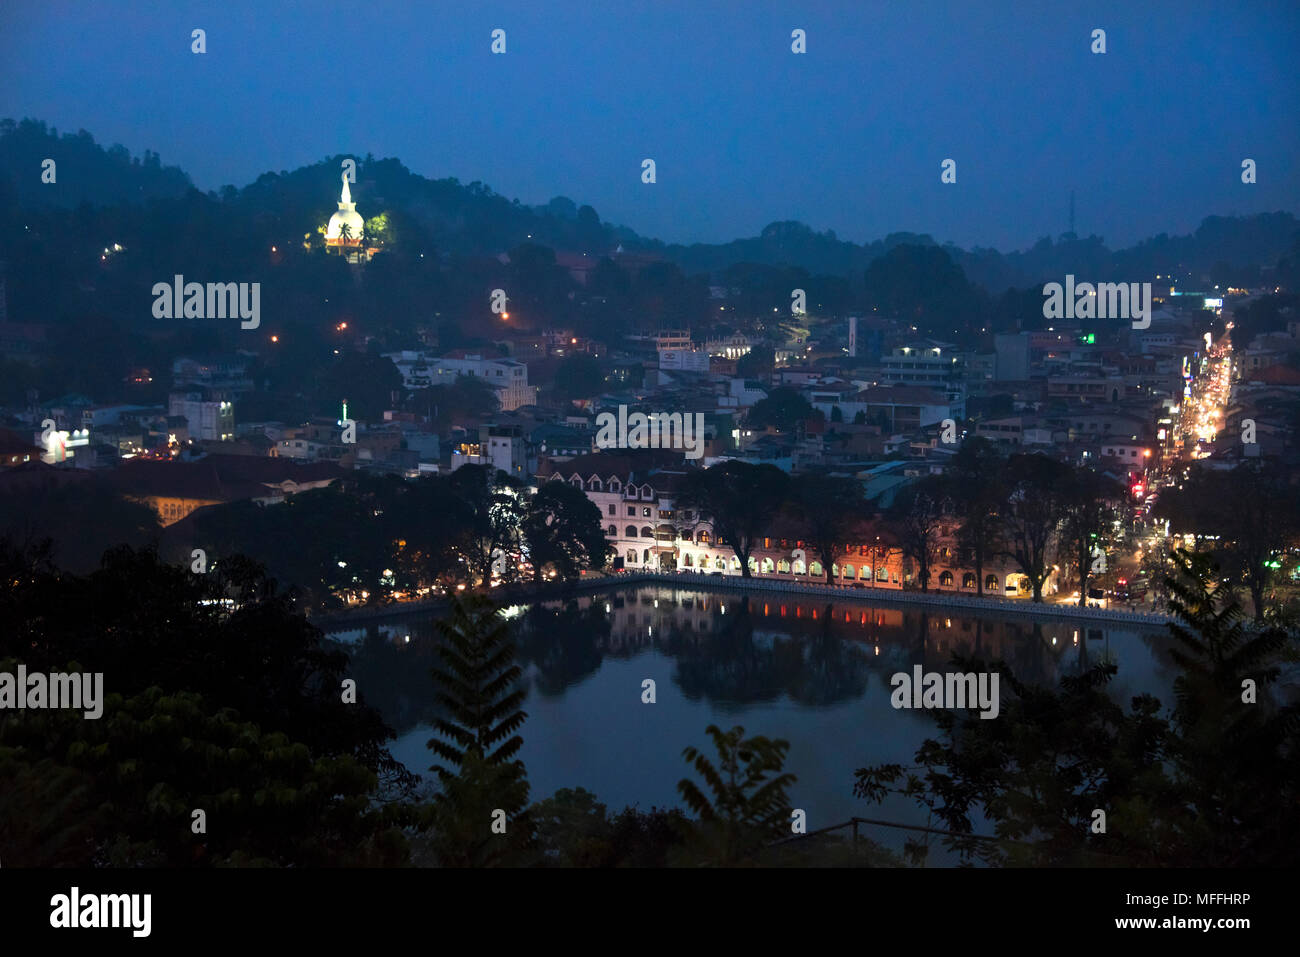 Horizontal cityscape of Kandy at night, Sri Lanka. - Stock Image